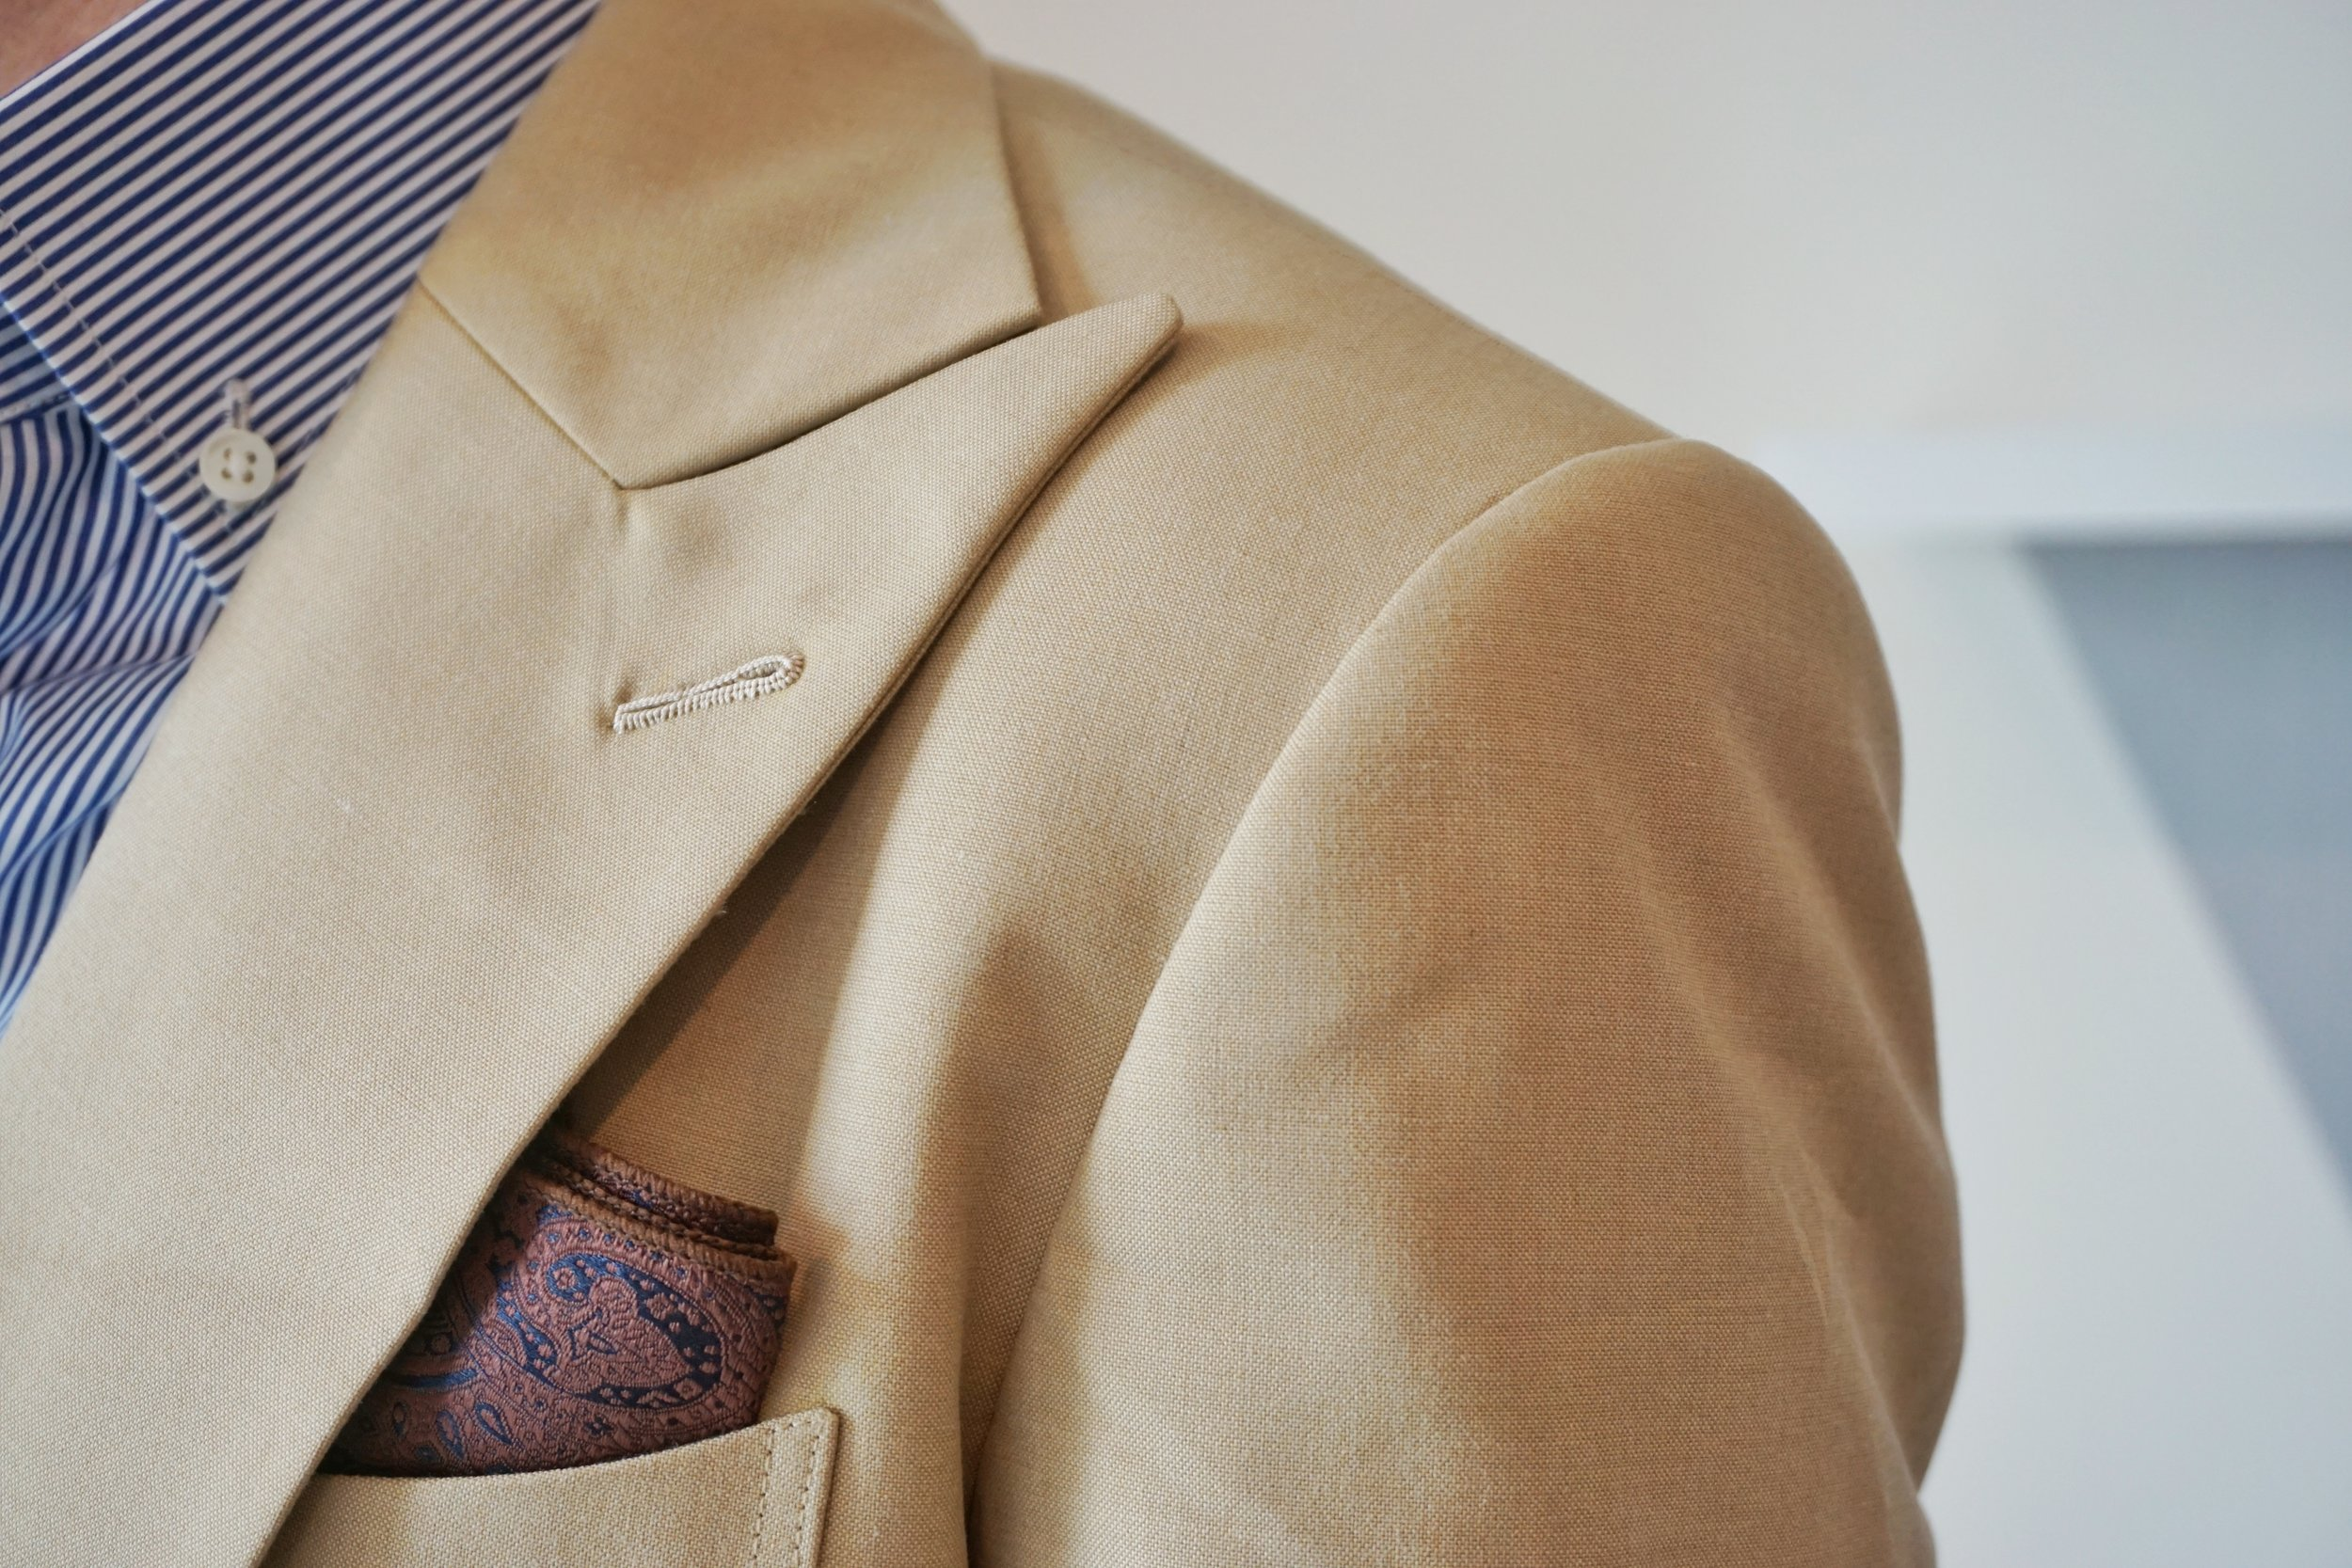 Peak lapel wide for more confidence.